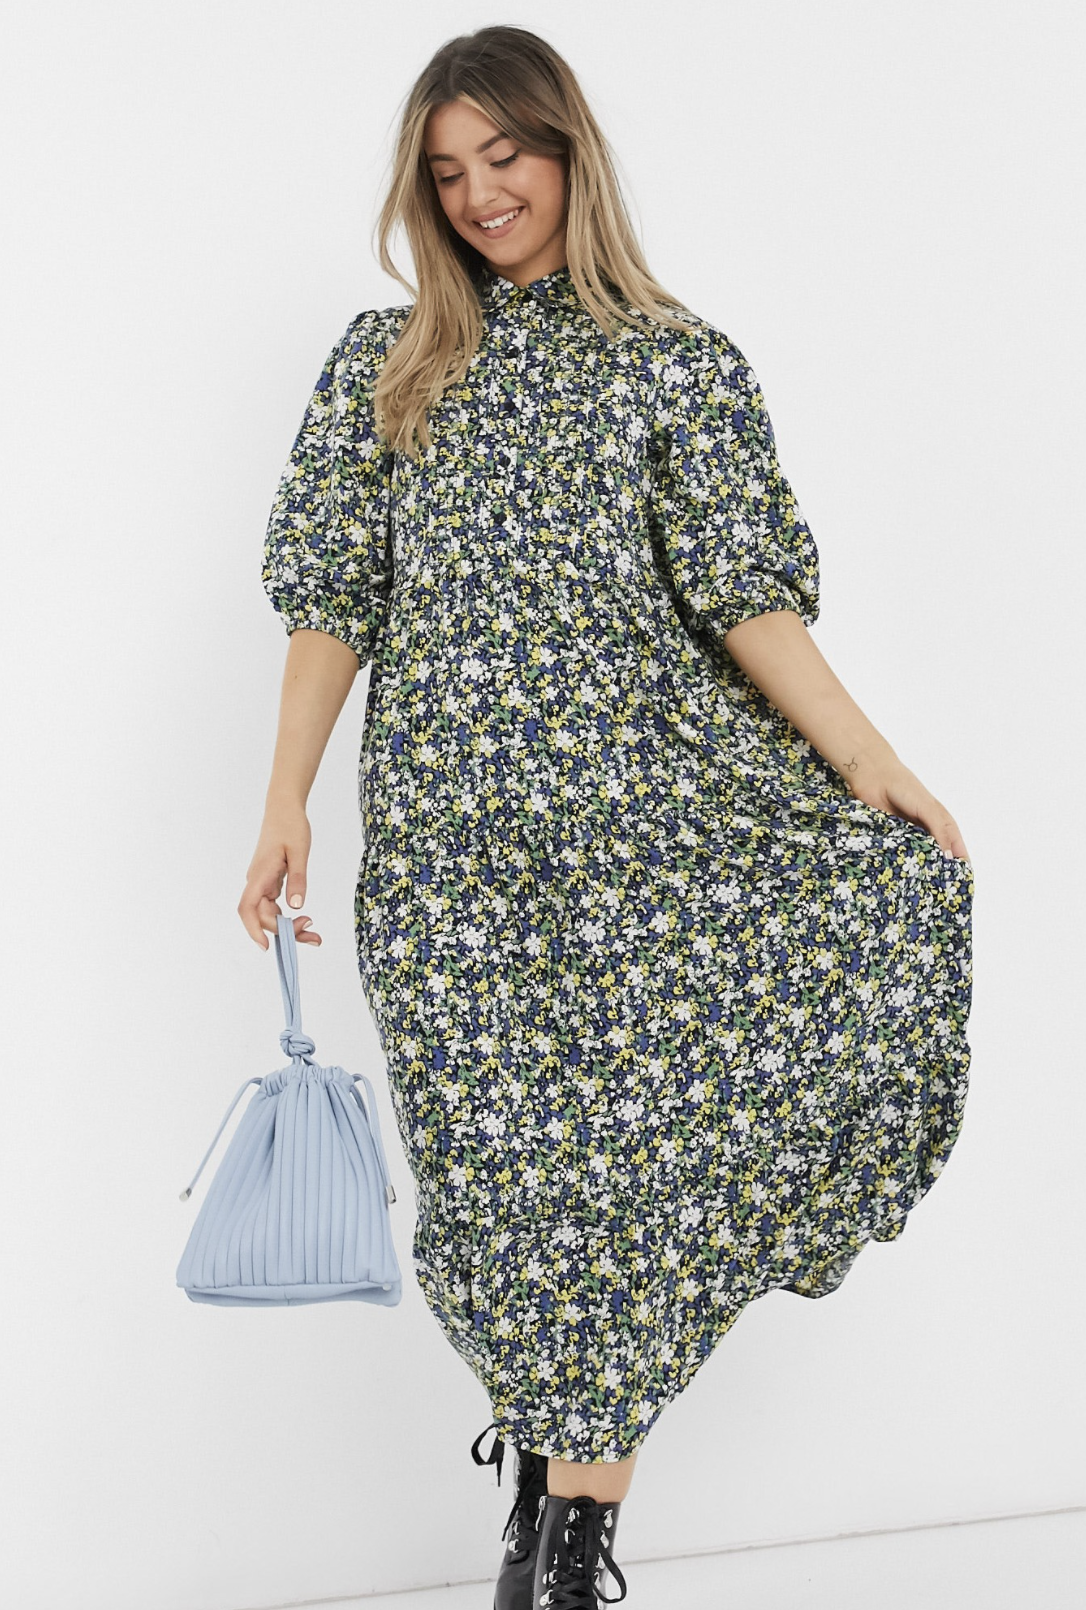 Step-up shirt dress with folds and flower print by ASOS DESIGN